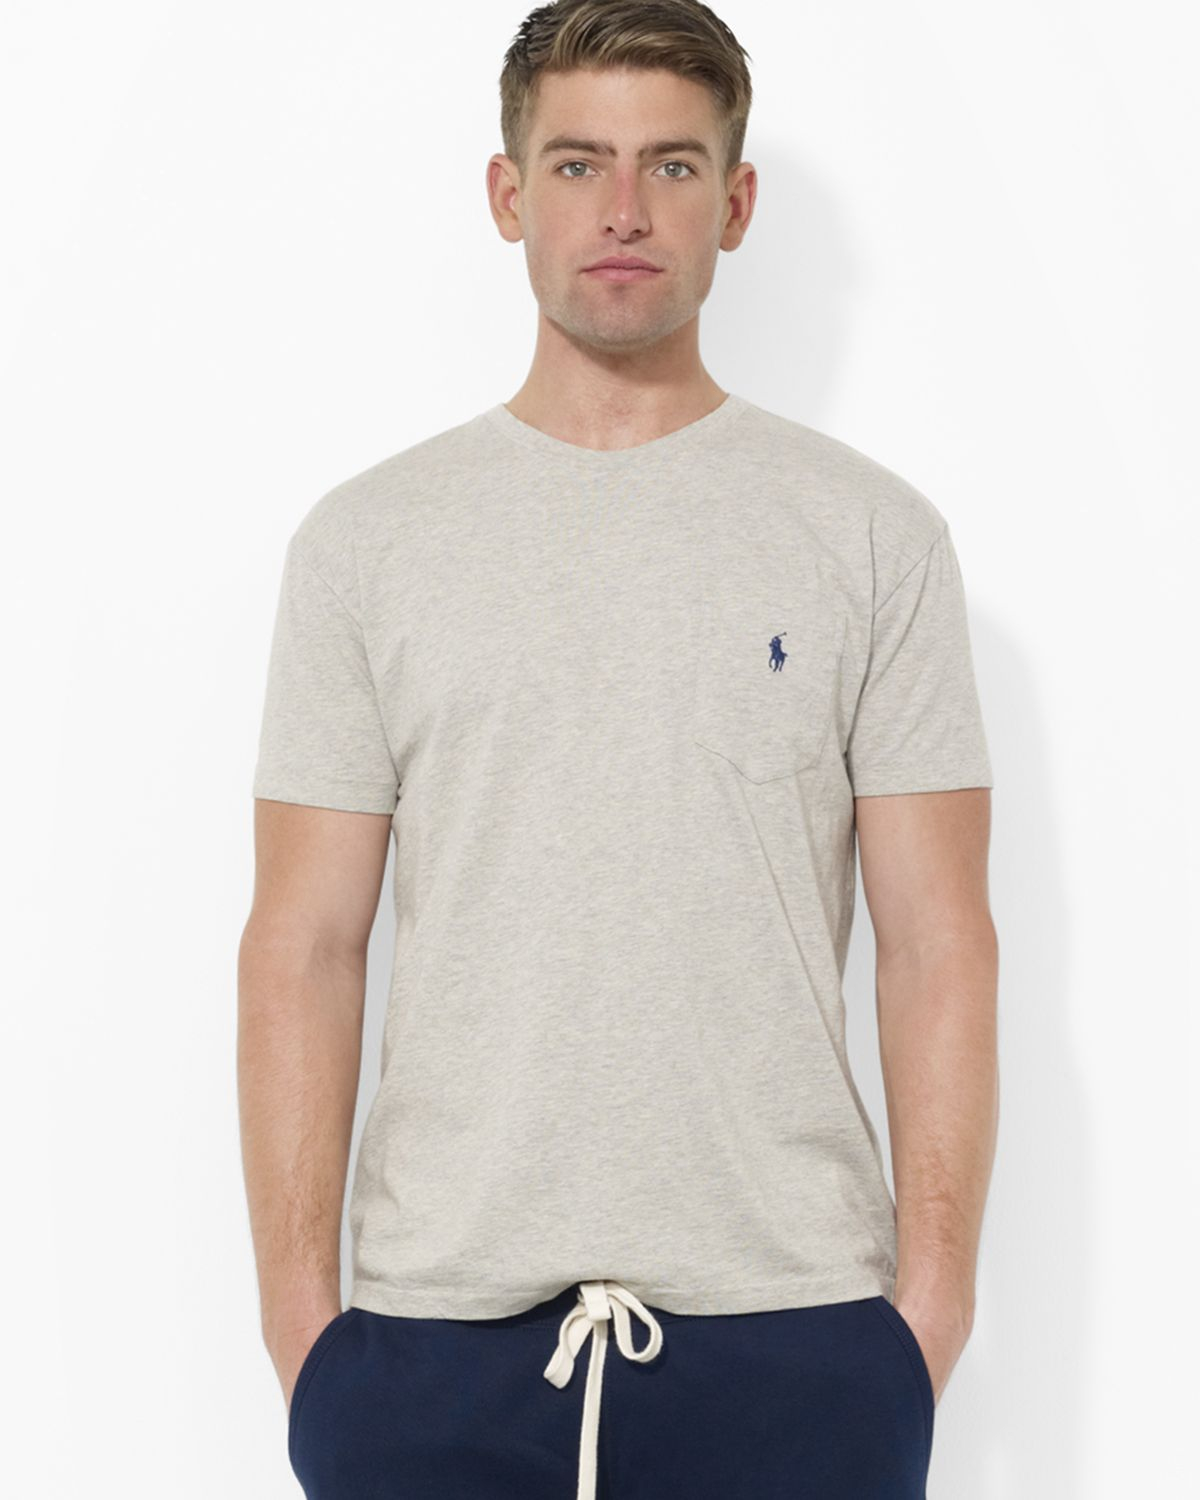 a6abaf795 ... neck t shirt adf80 b7d8e  purchase lyst ralph lauren polo classic fit  short sleeved cotton pocket tee bc97a 39d6a